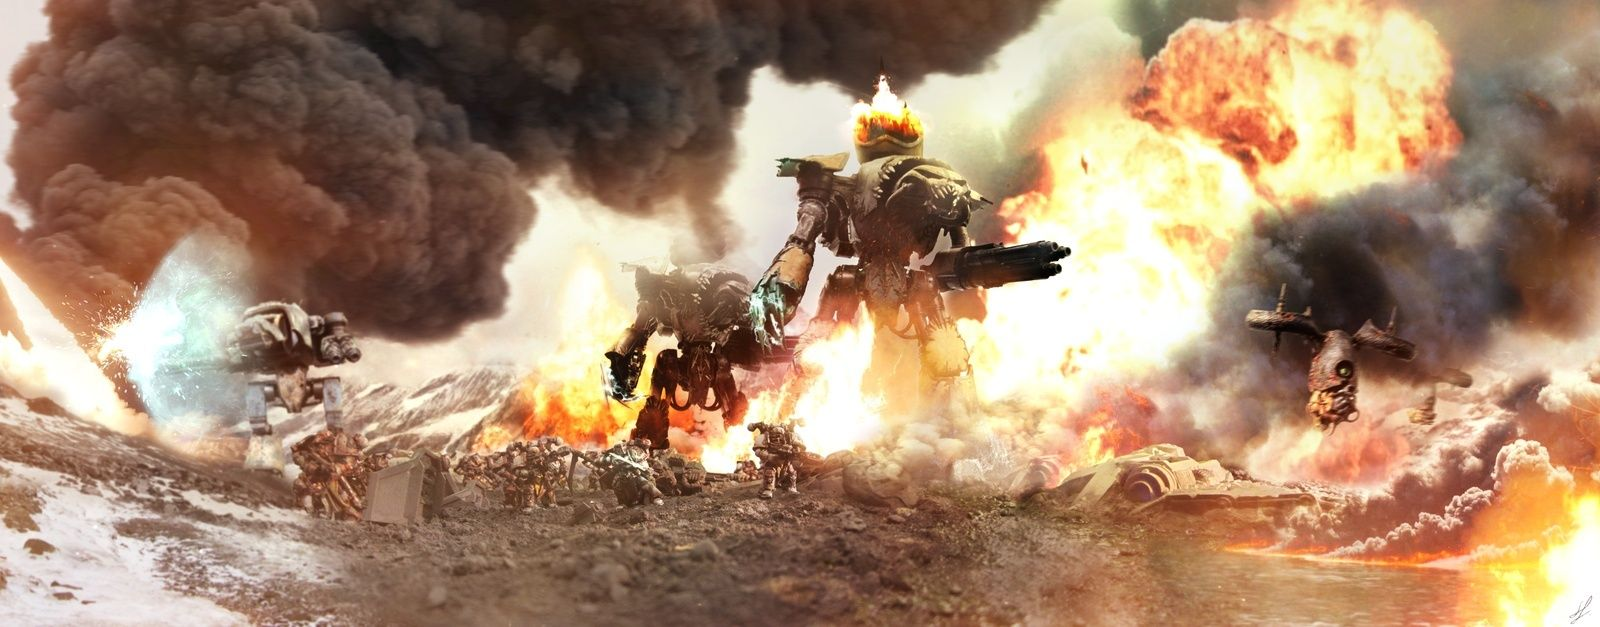 [W40K] Collection d'images : Warhammer 40K divers et inclassables - Page 2 Sons_o10